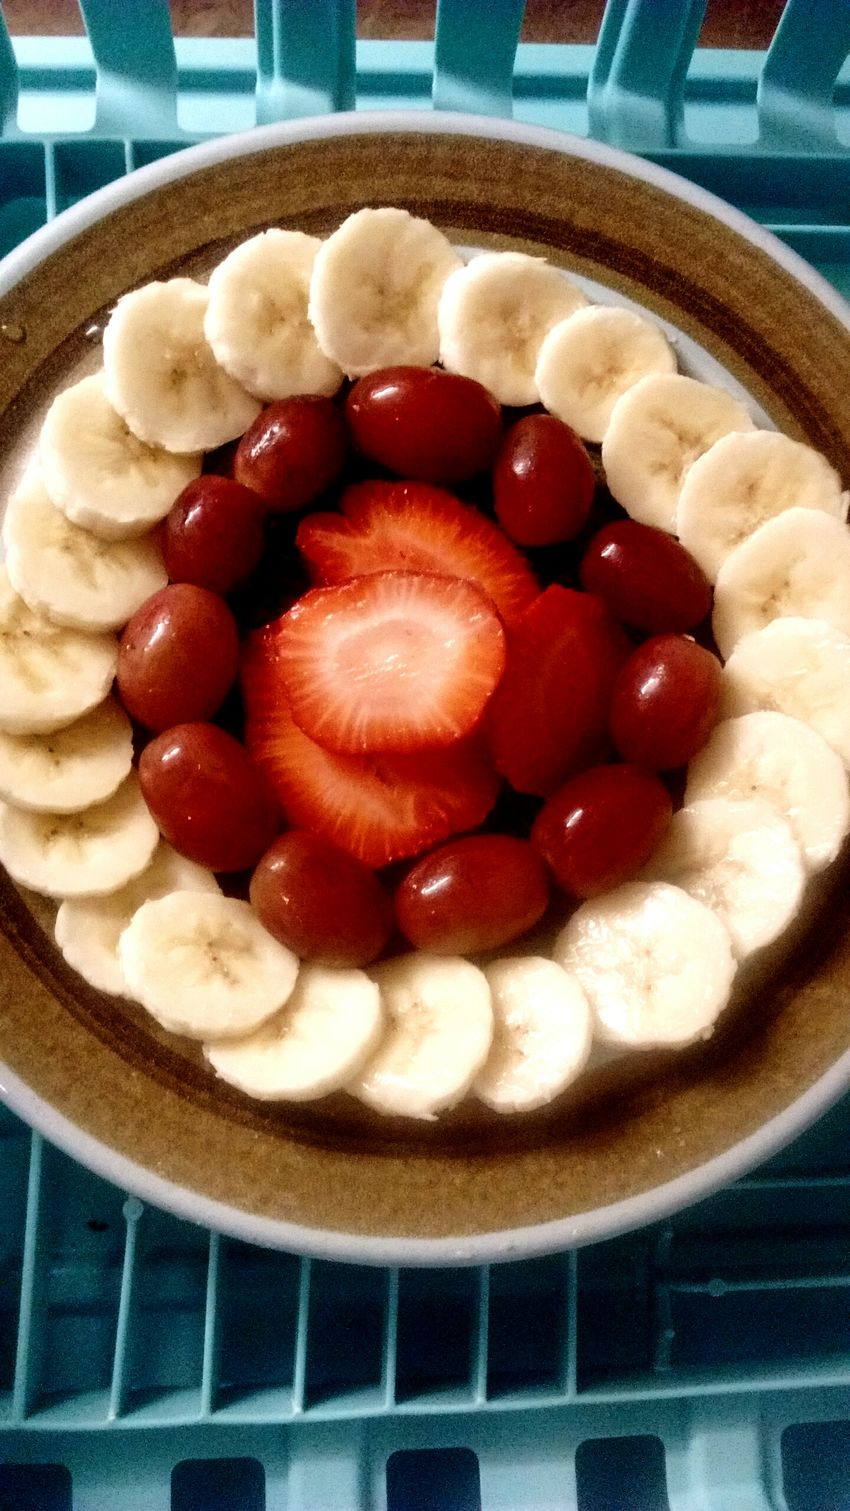 Food Freshness Healthy Eating Ready-to-eat Red Fruit Plate Strawberry Sliced Banana Grapes